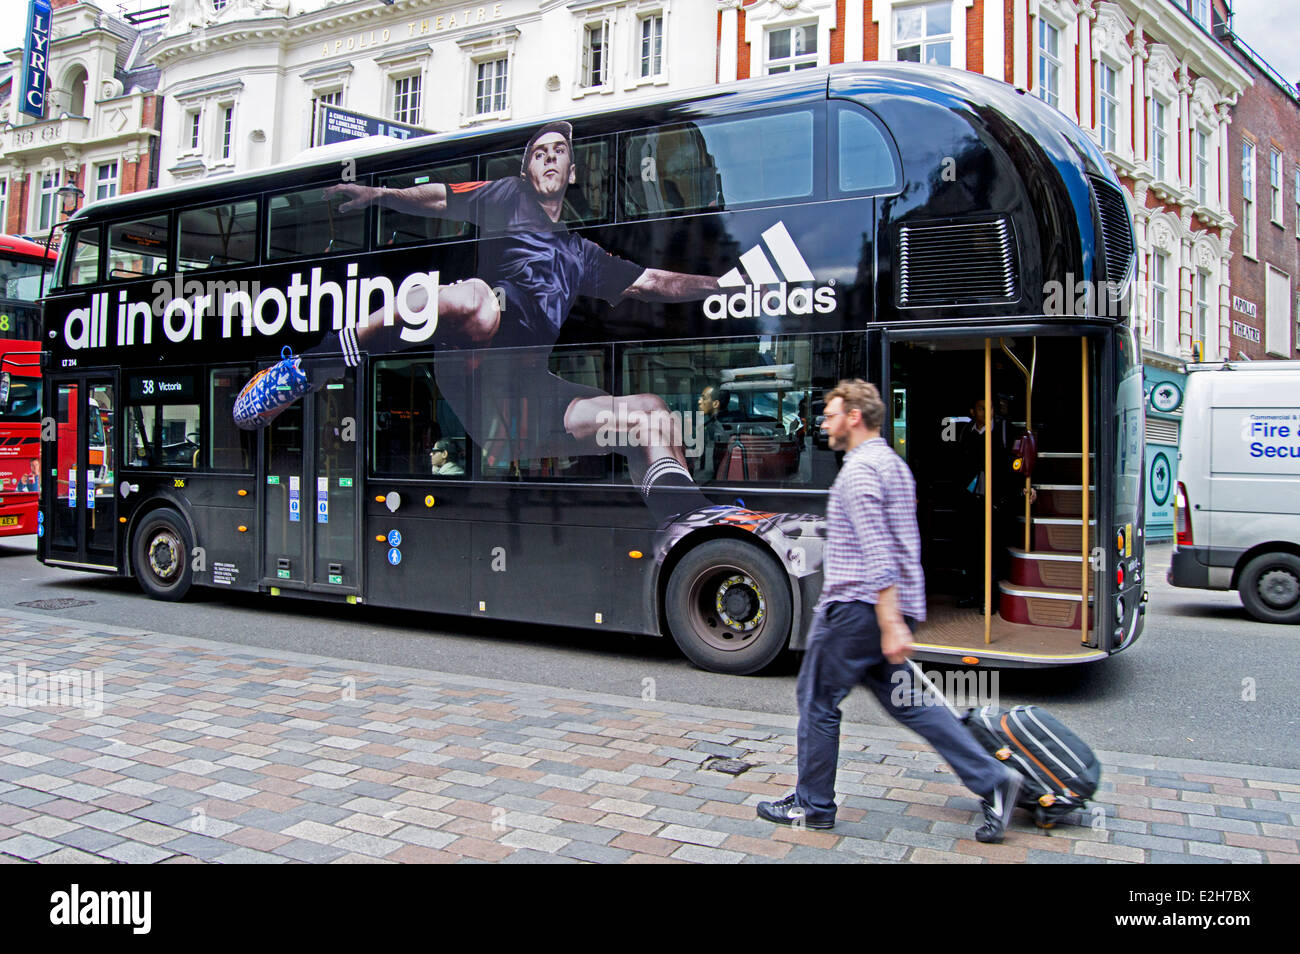 Adidas Advertisement On The New Routemaster Bus In Central London Stock Photo Alamy